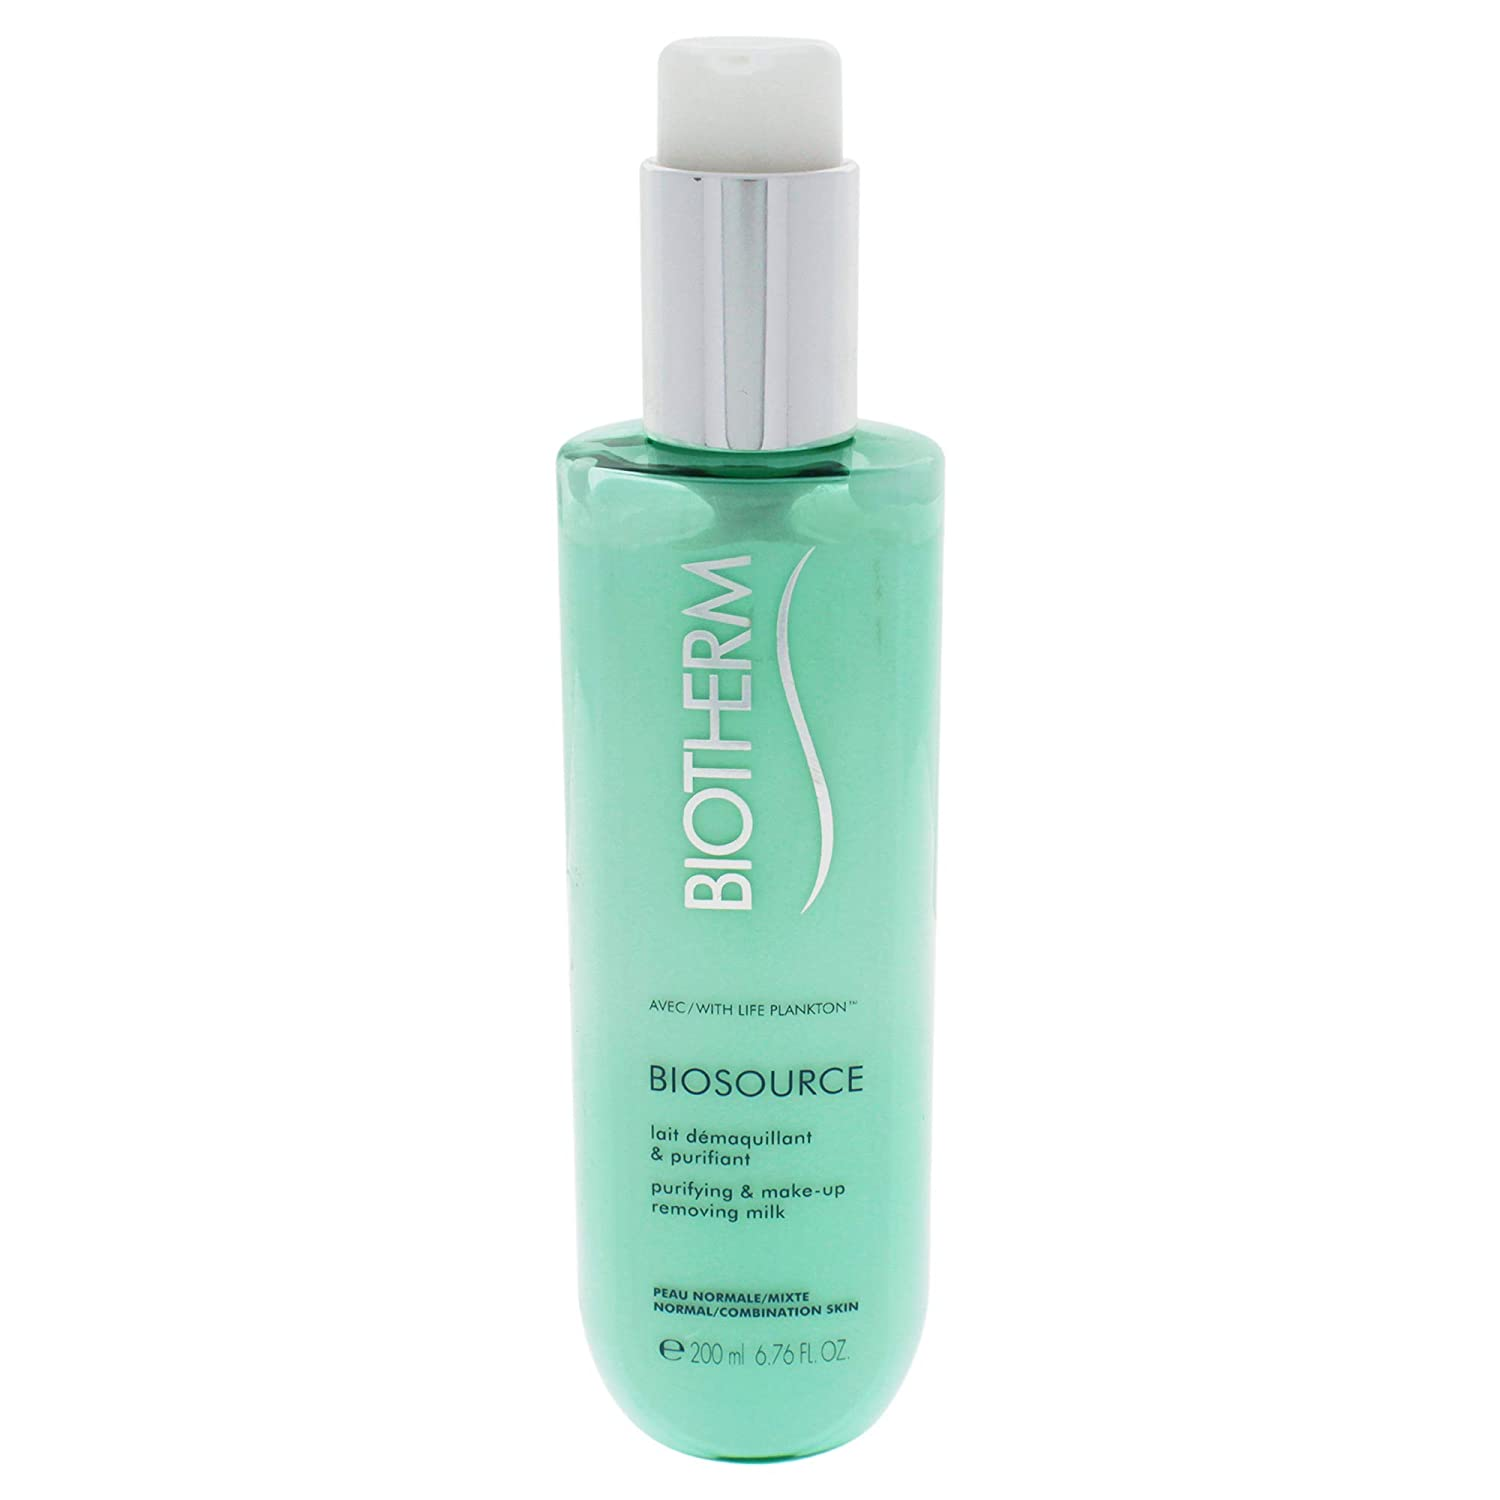 Biotherm Biosource Purifying and Make-Up Removing Milk, for Normal/Combination Skin, 6.76 Ounce